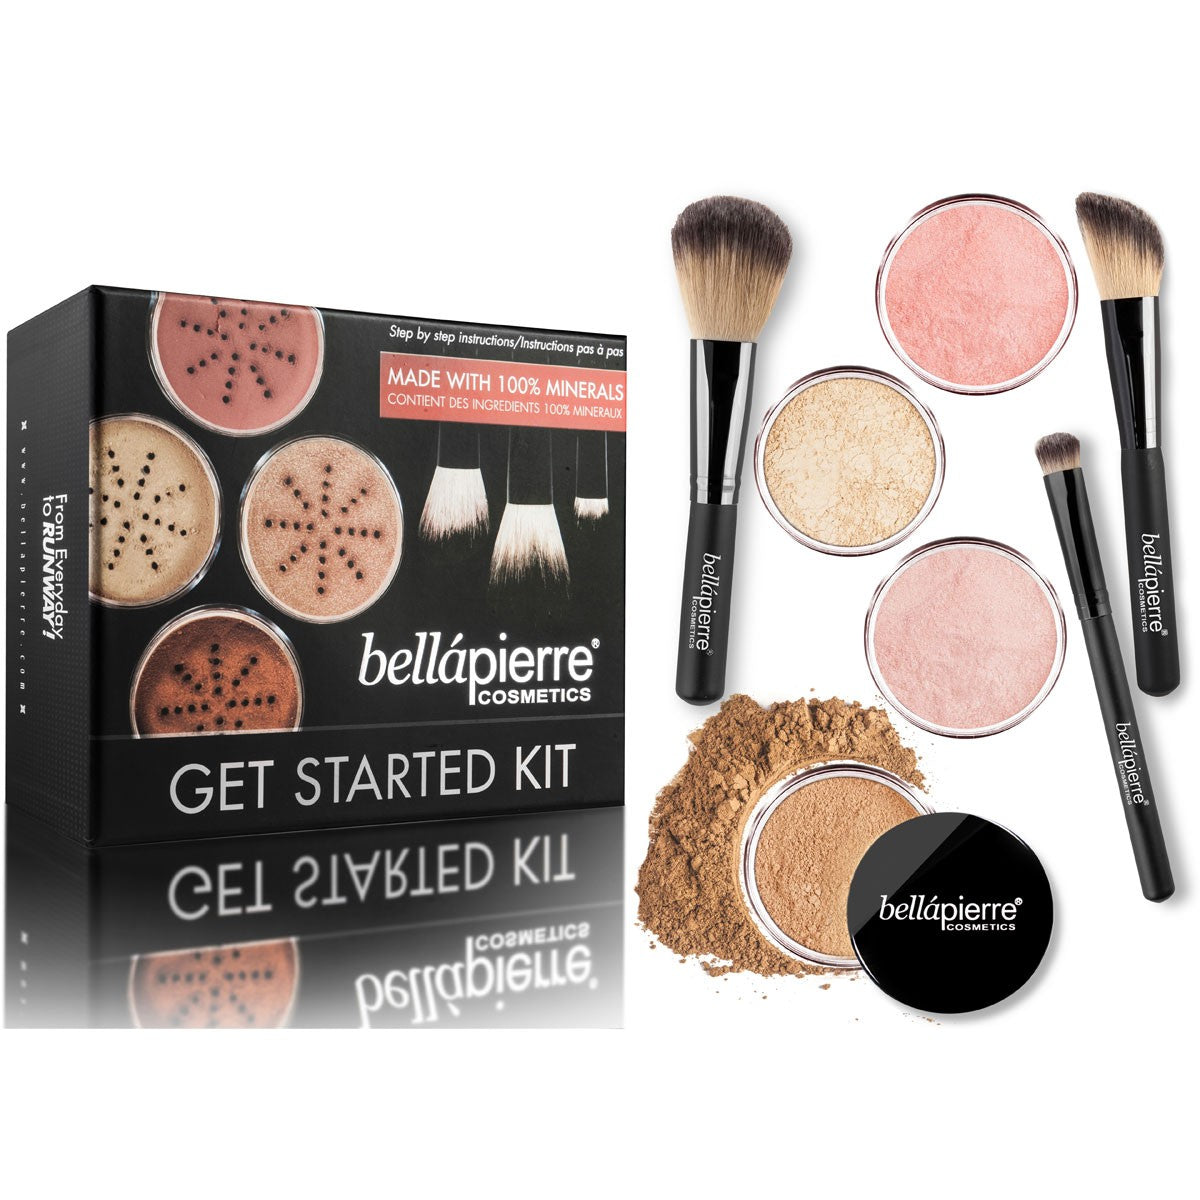 bellapierre Cosmetics Get Started Kit